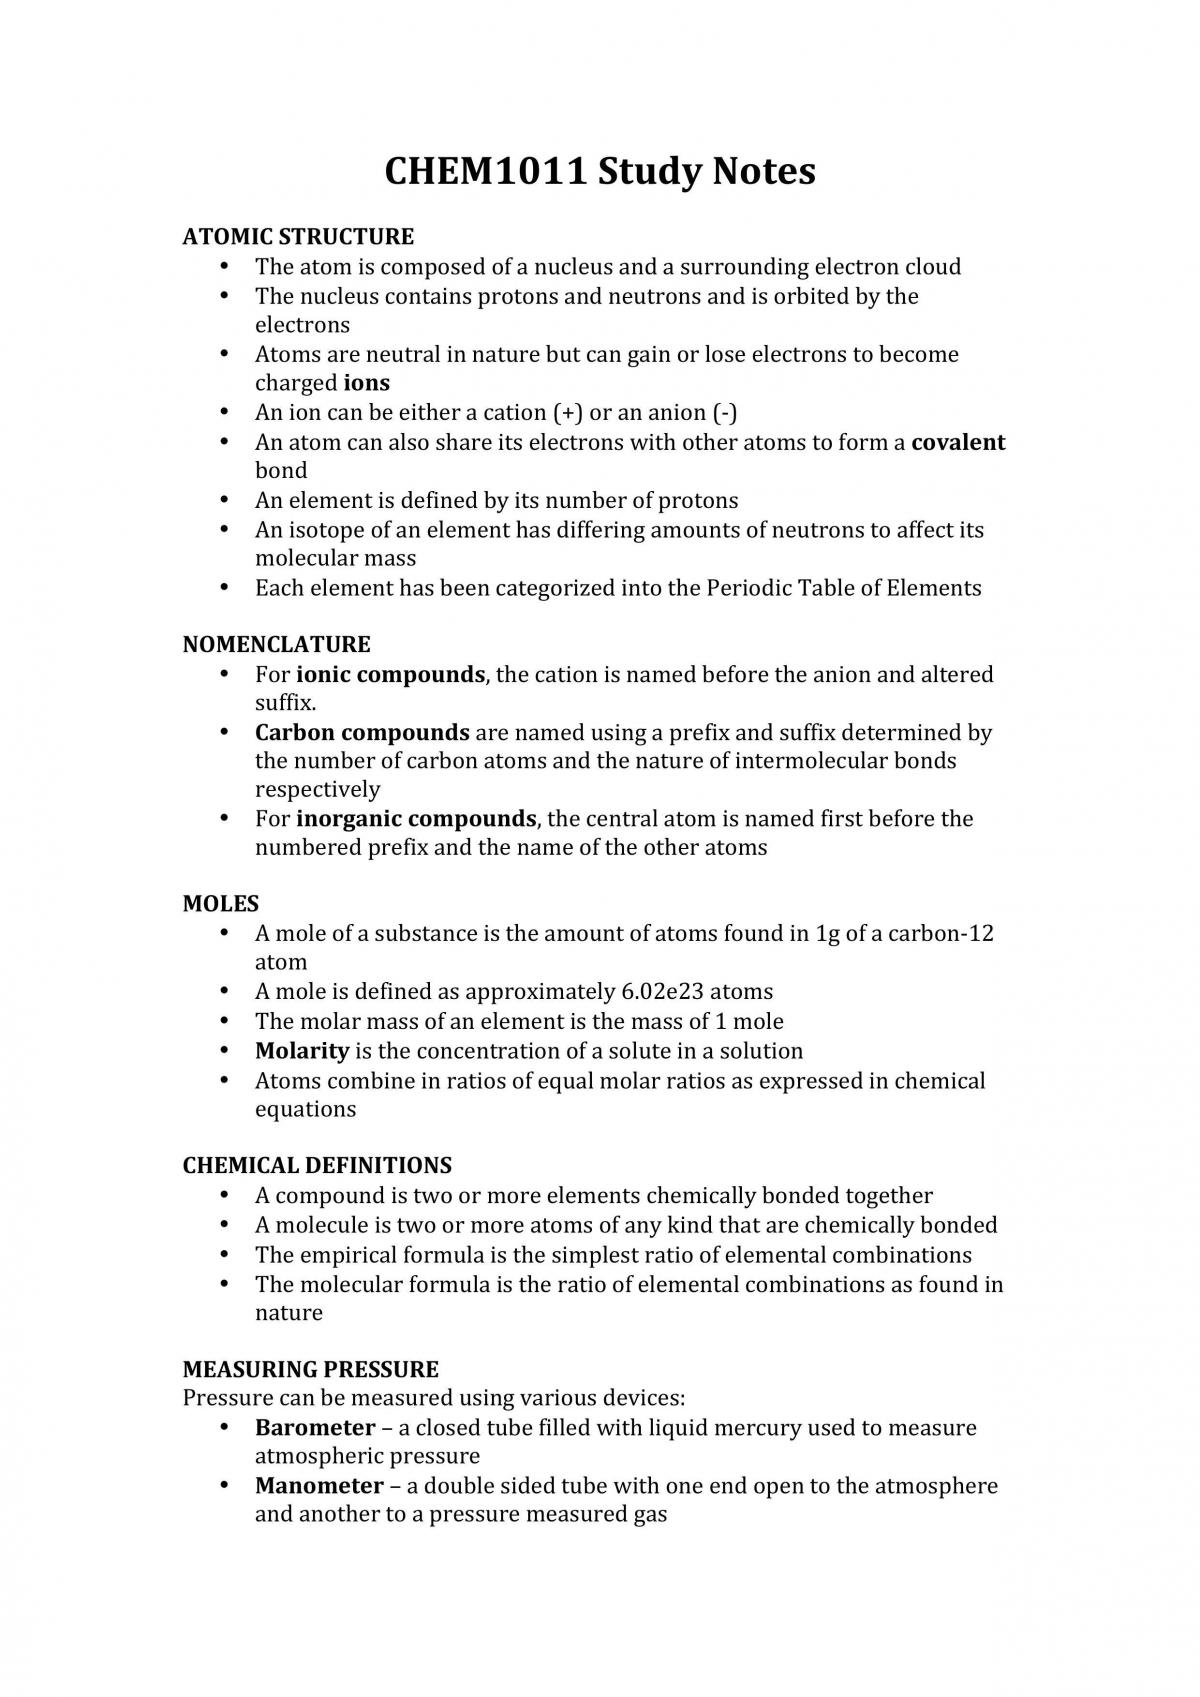 CHEM1011 Study Notes - Page 1